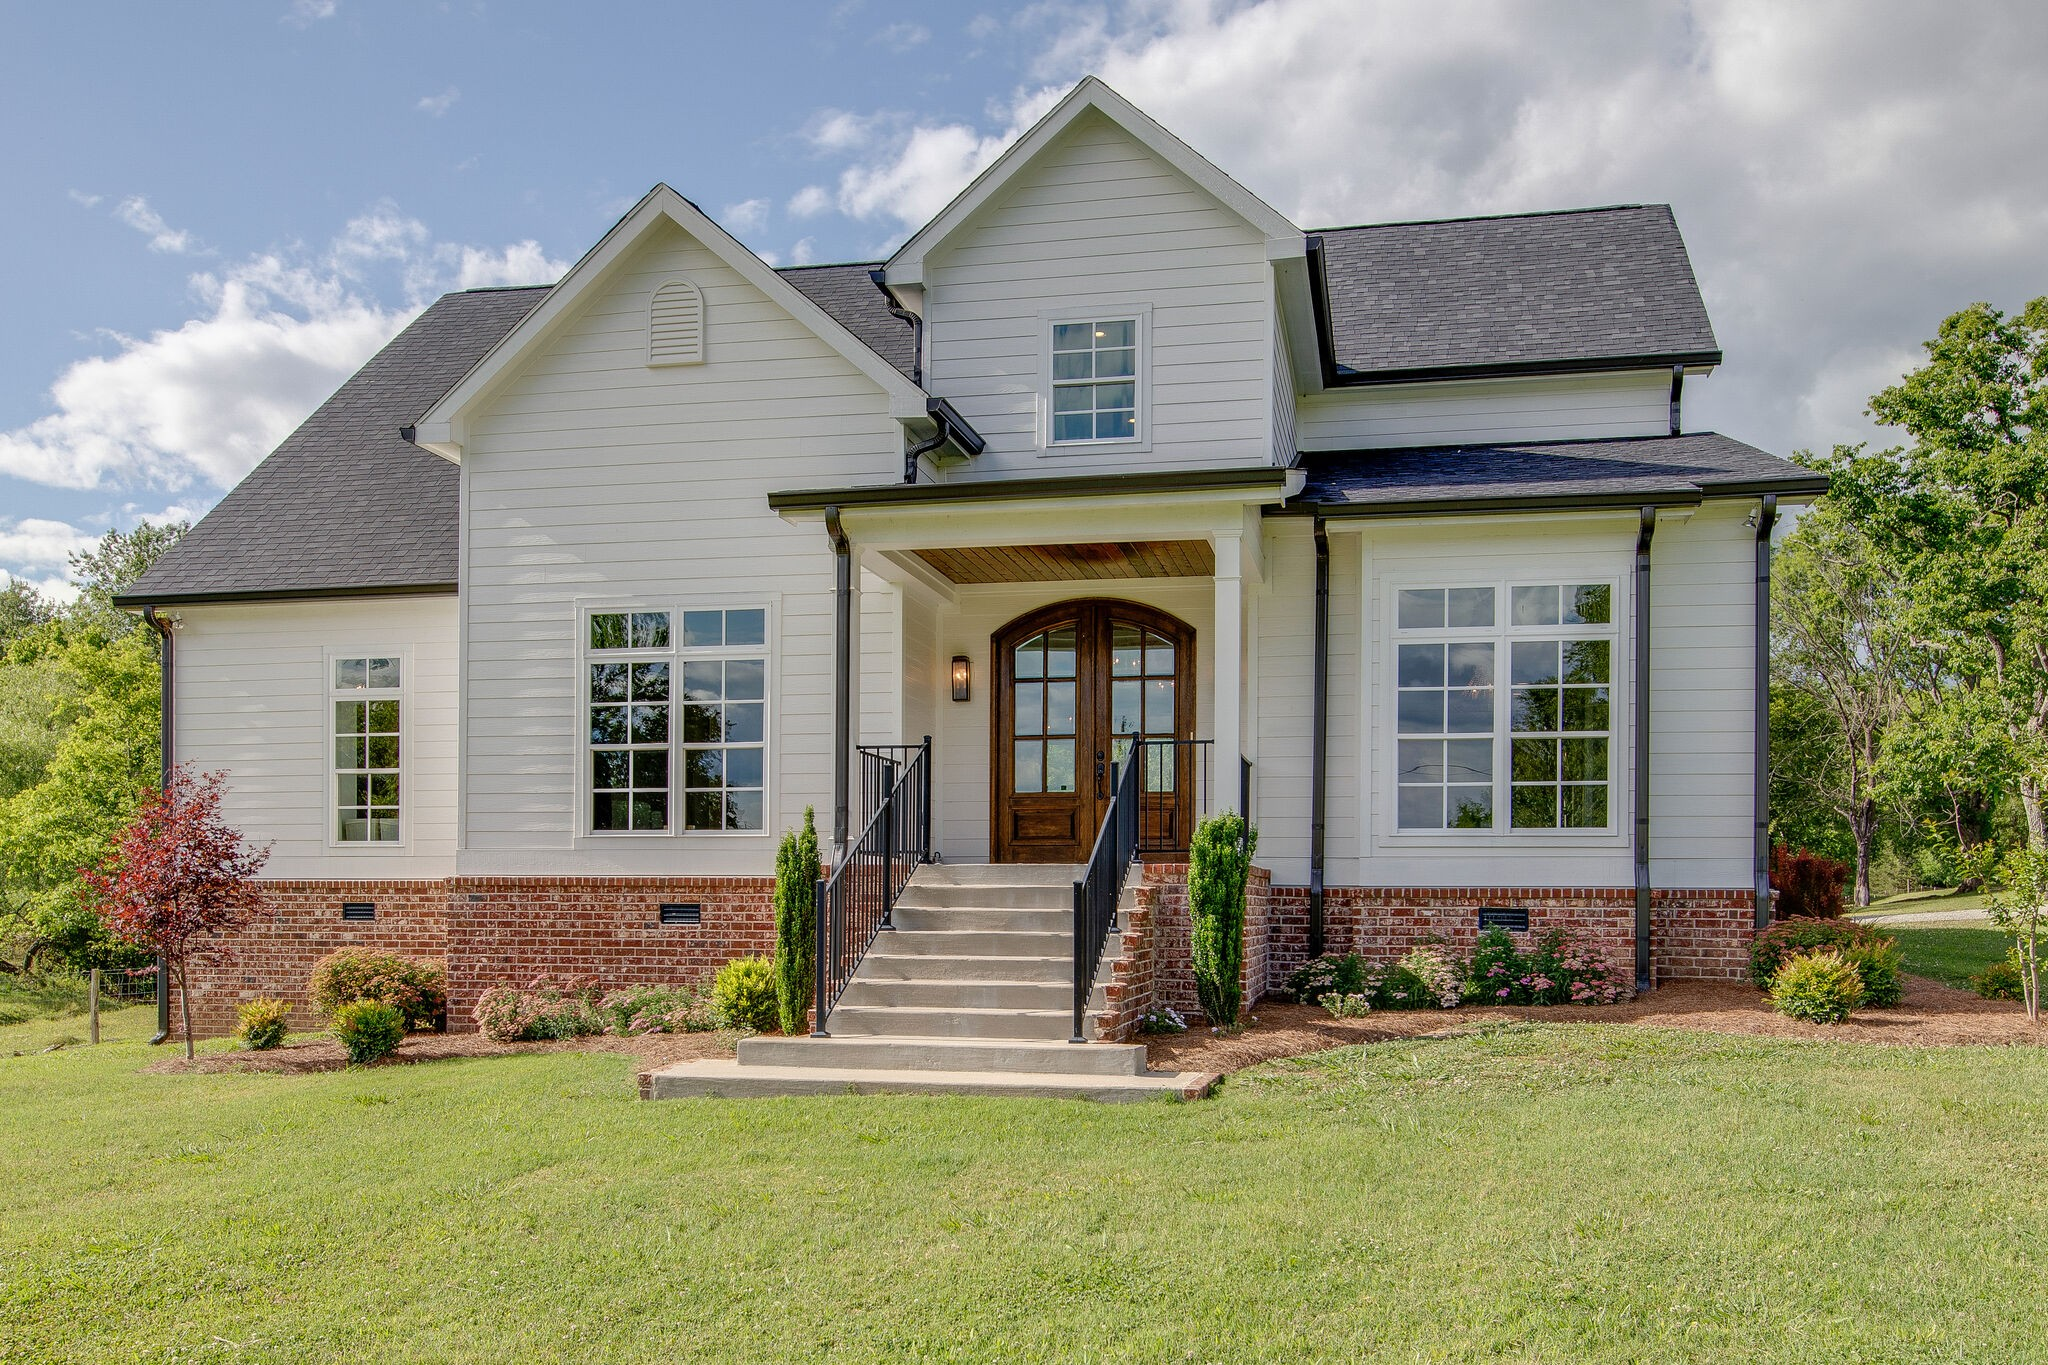 5005 Remus Pvt Lane Property Photo - Thompsons Station, TN real estate listing